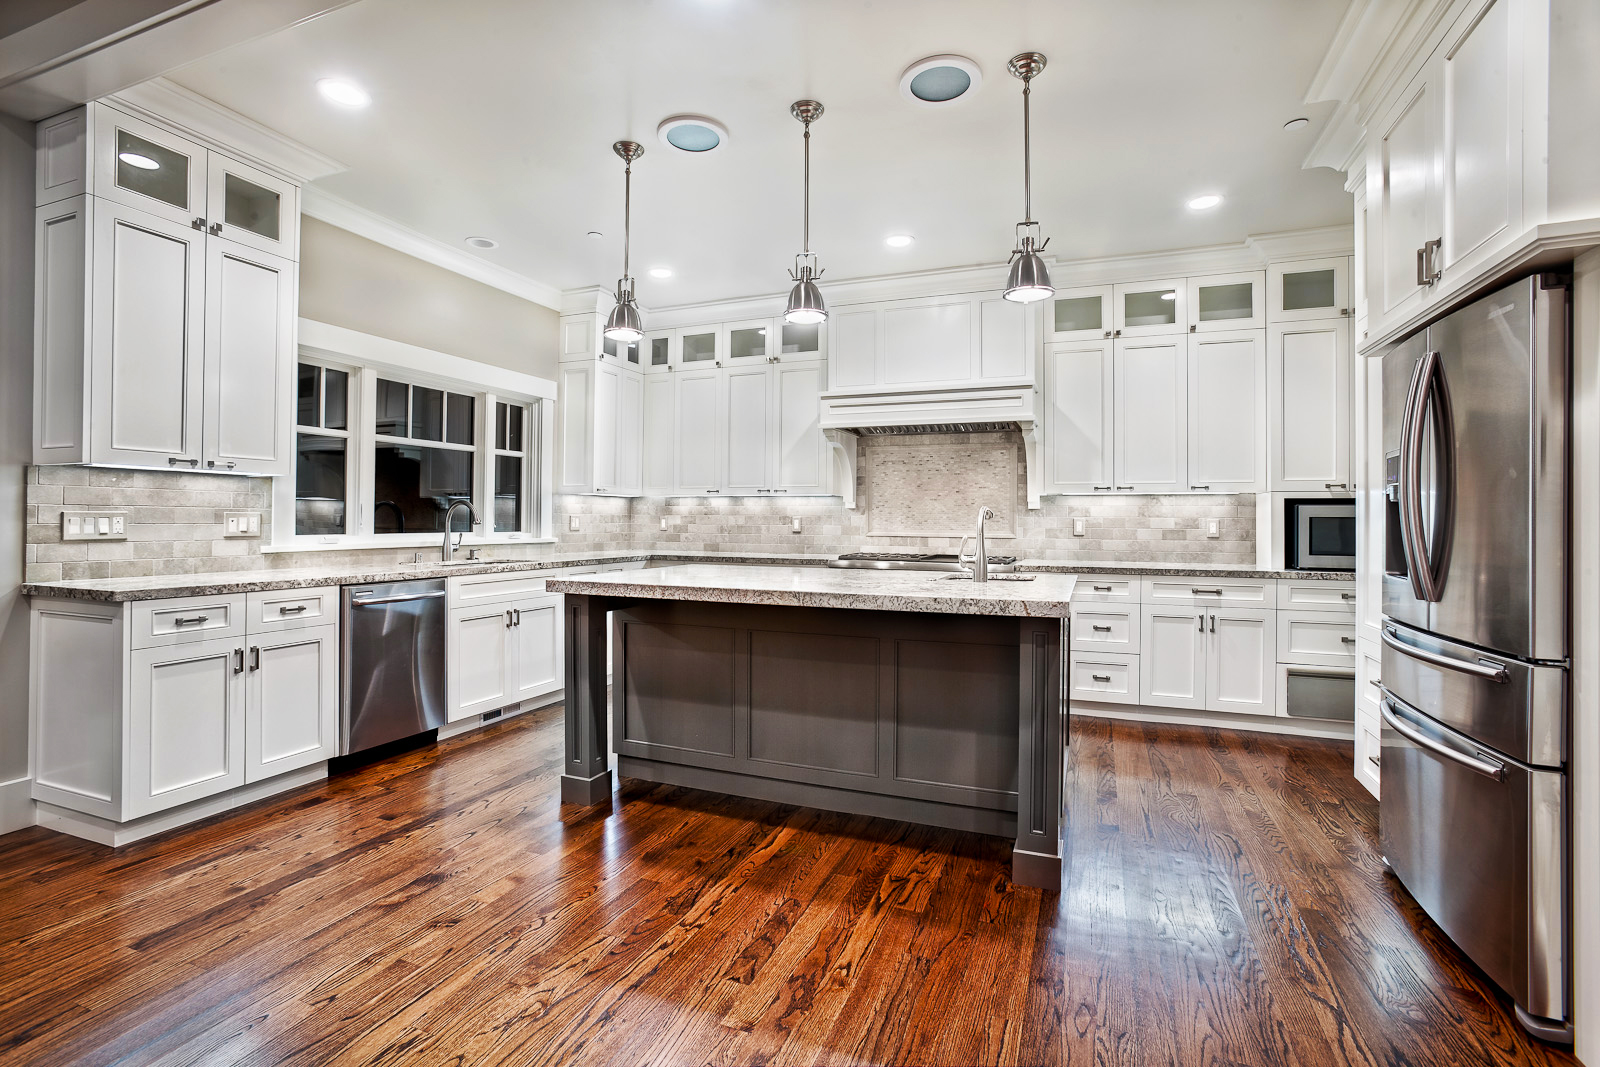 Ideas for custom kitchen cabinets roy home design for Kitchen remodel ideas with white cabinets